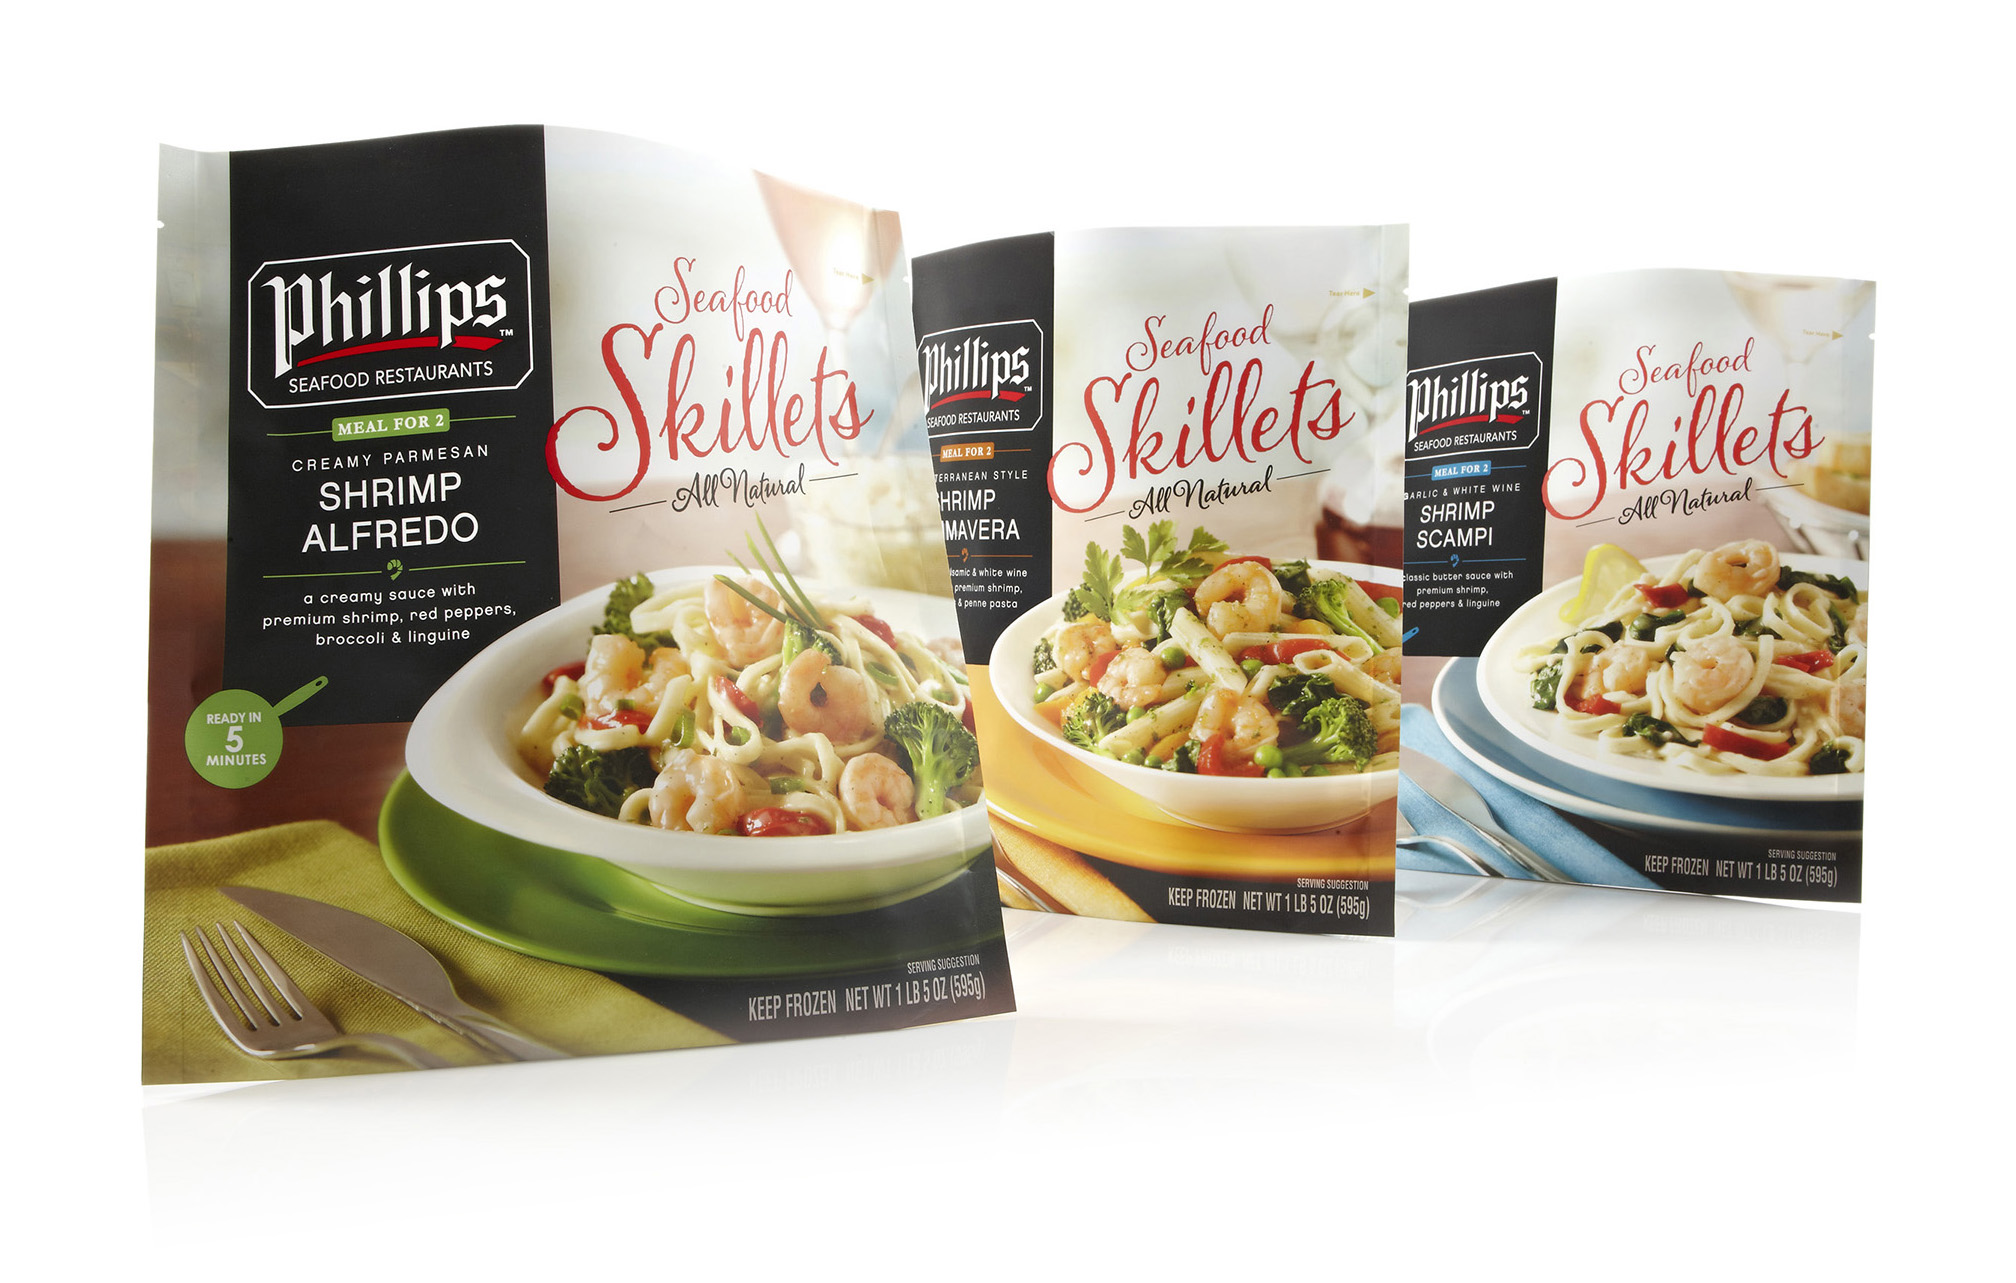 Food Photographer, Commercial Food Photography, Food Advertising Photography| Pohuski Studios,  Phillips Skillets